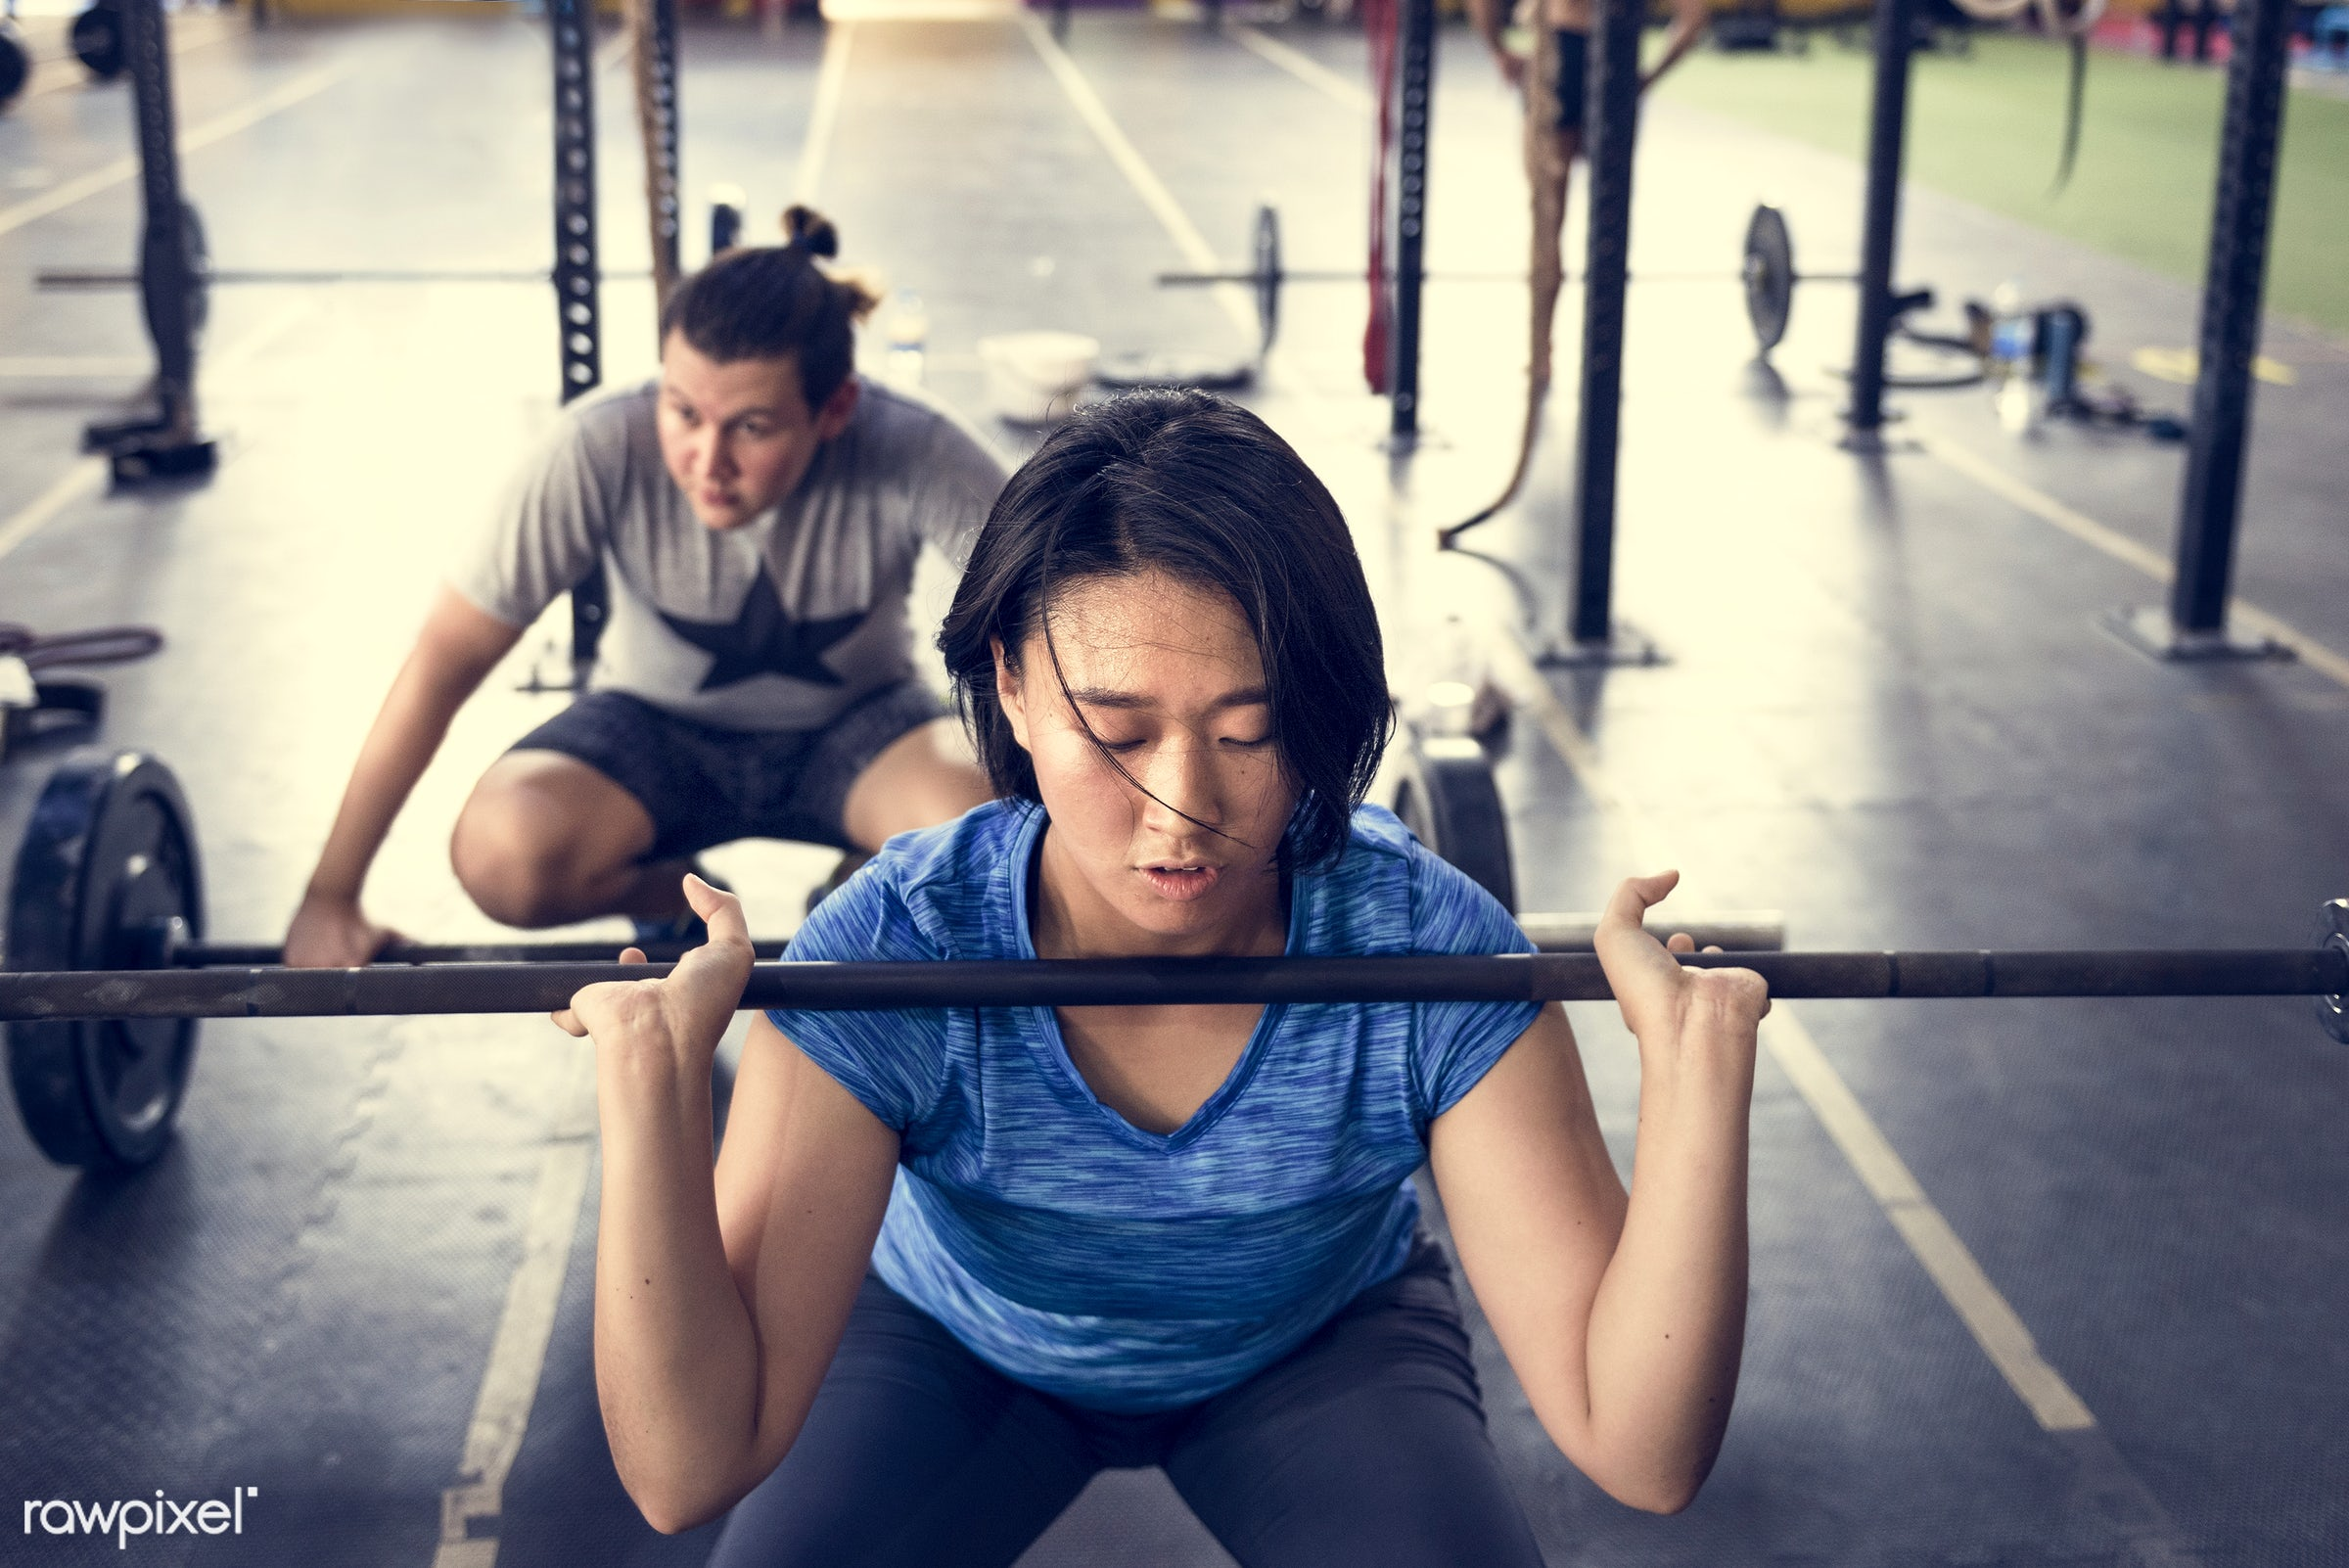 At the gym - active, activity, asian ethnicity, athlete, athletic, barbell, body, concentration, diverse, diversity,...